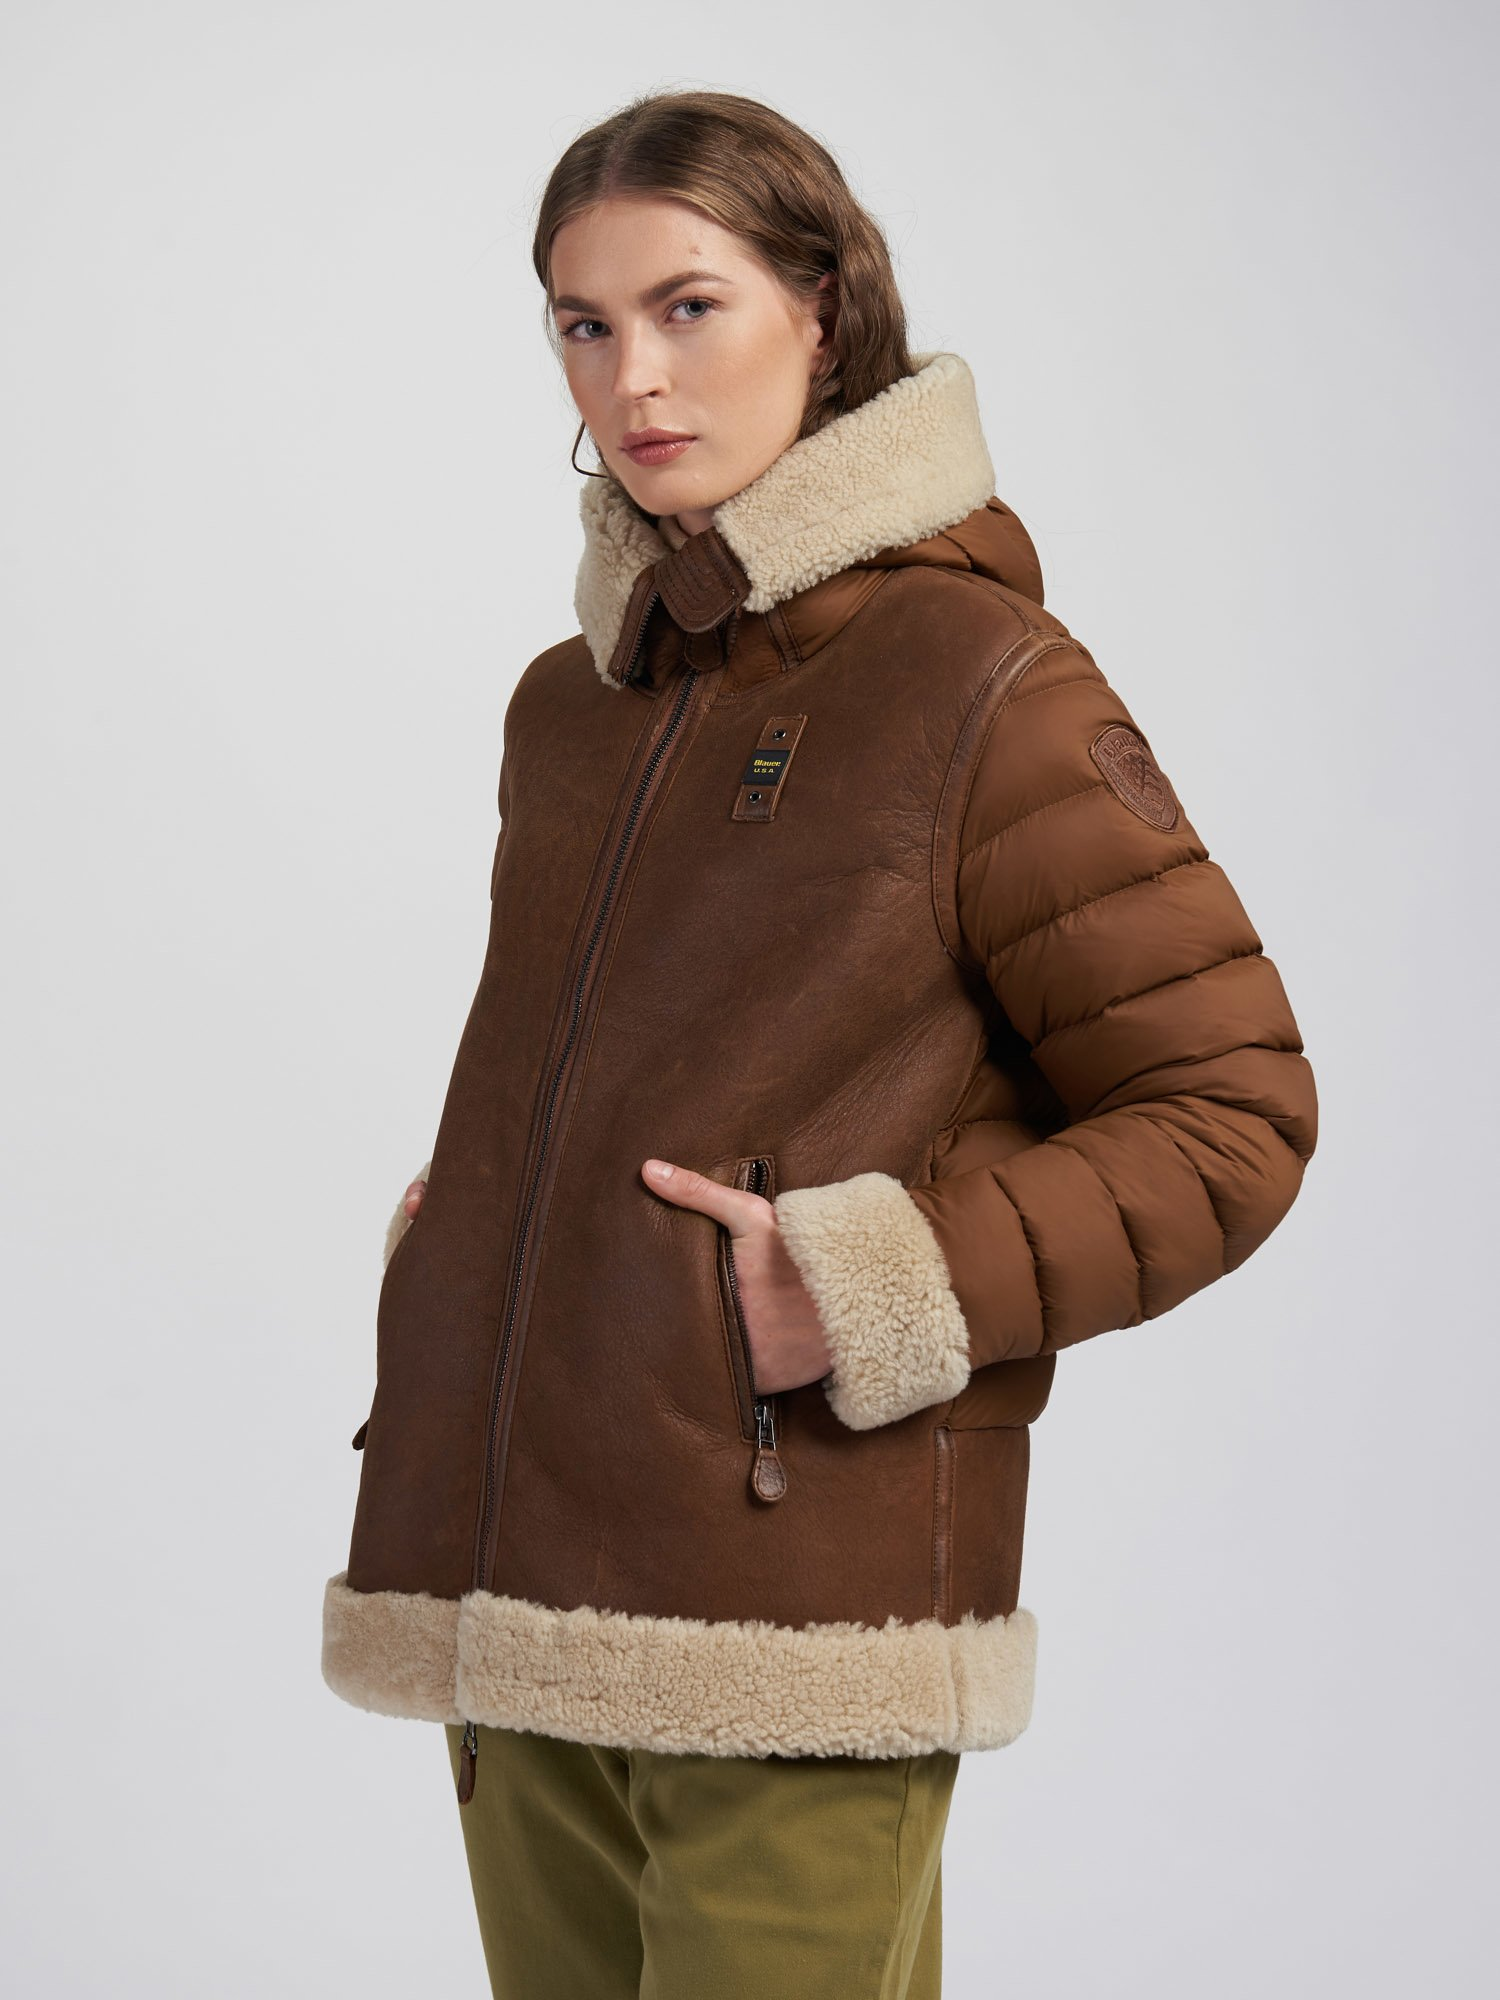 LINDA SUEDE SHEARLING WITH HOOD - Blauer